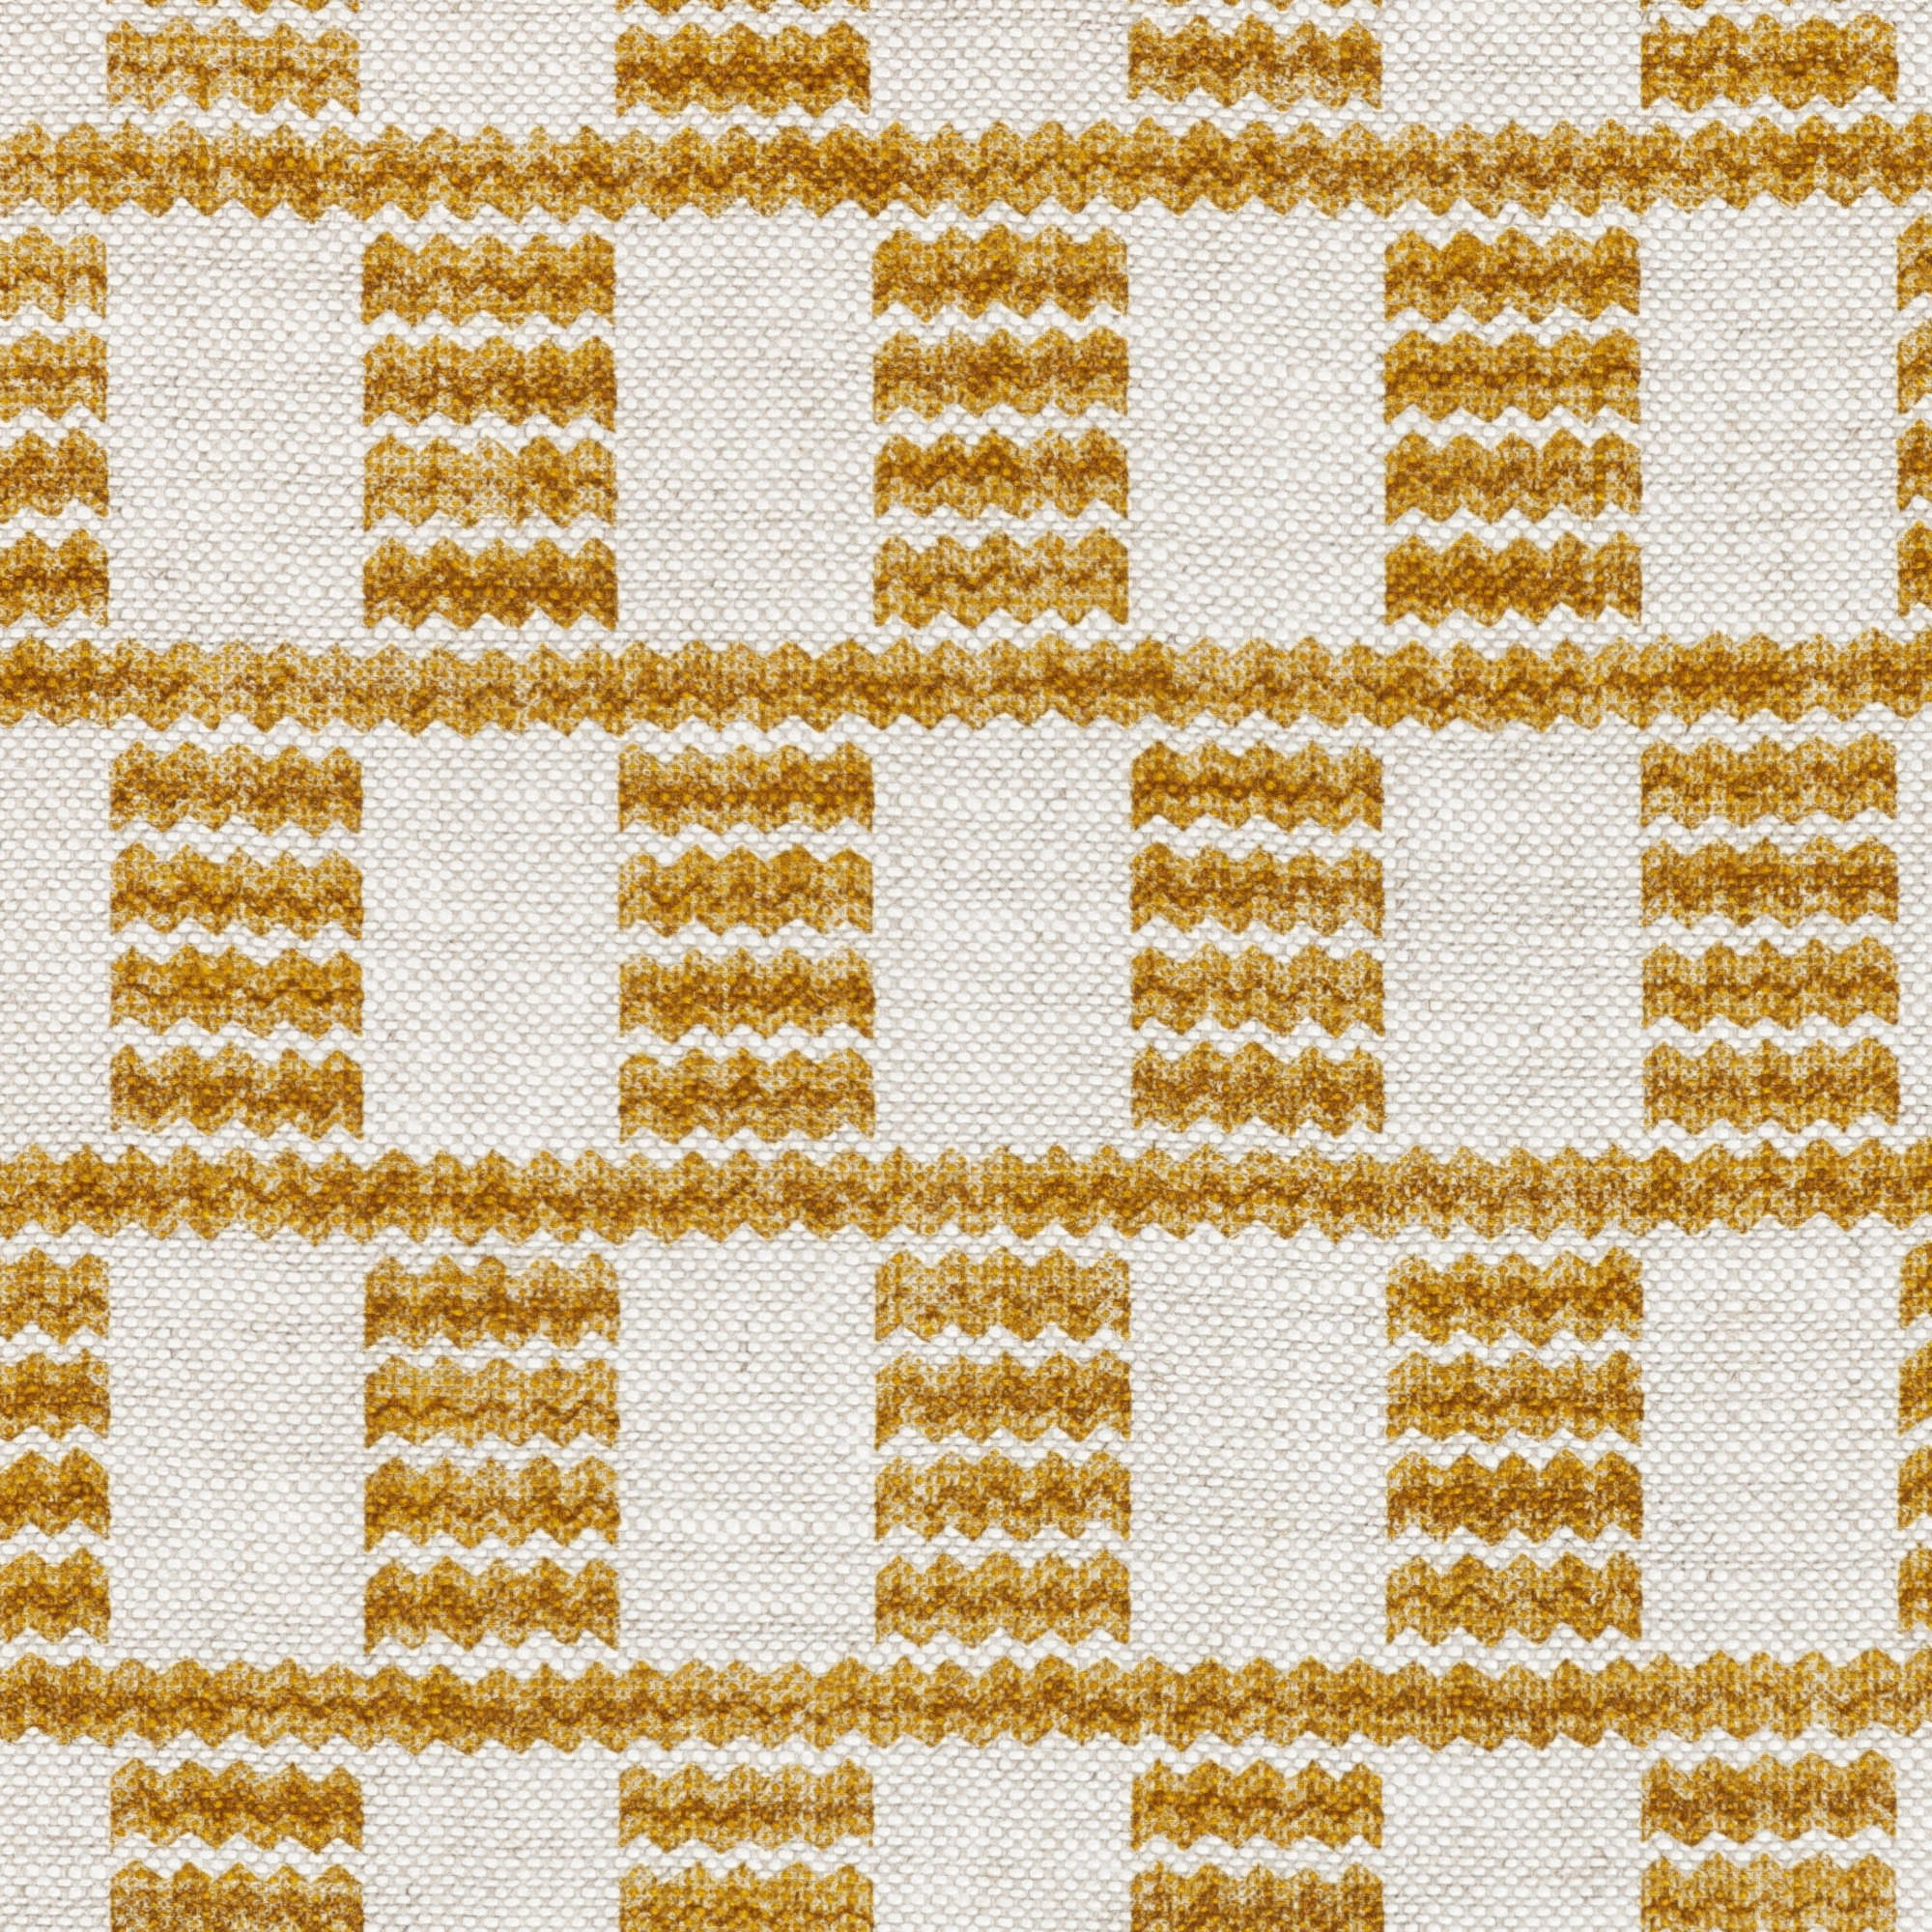 COVE-006-Yellow-Cove-Linen(2)